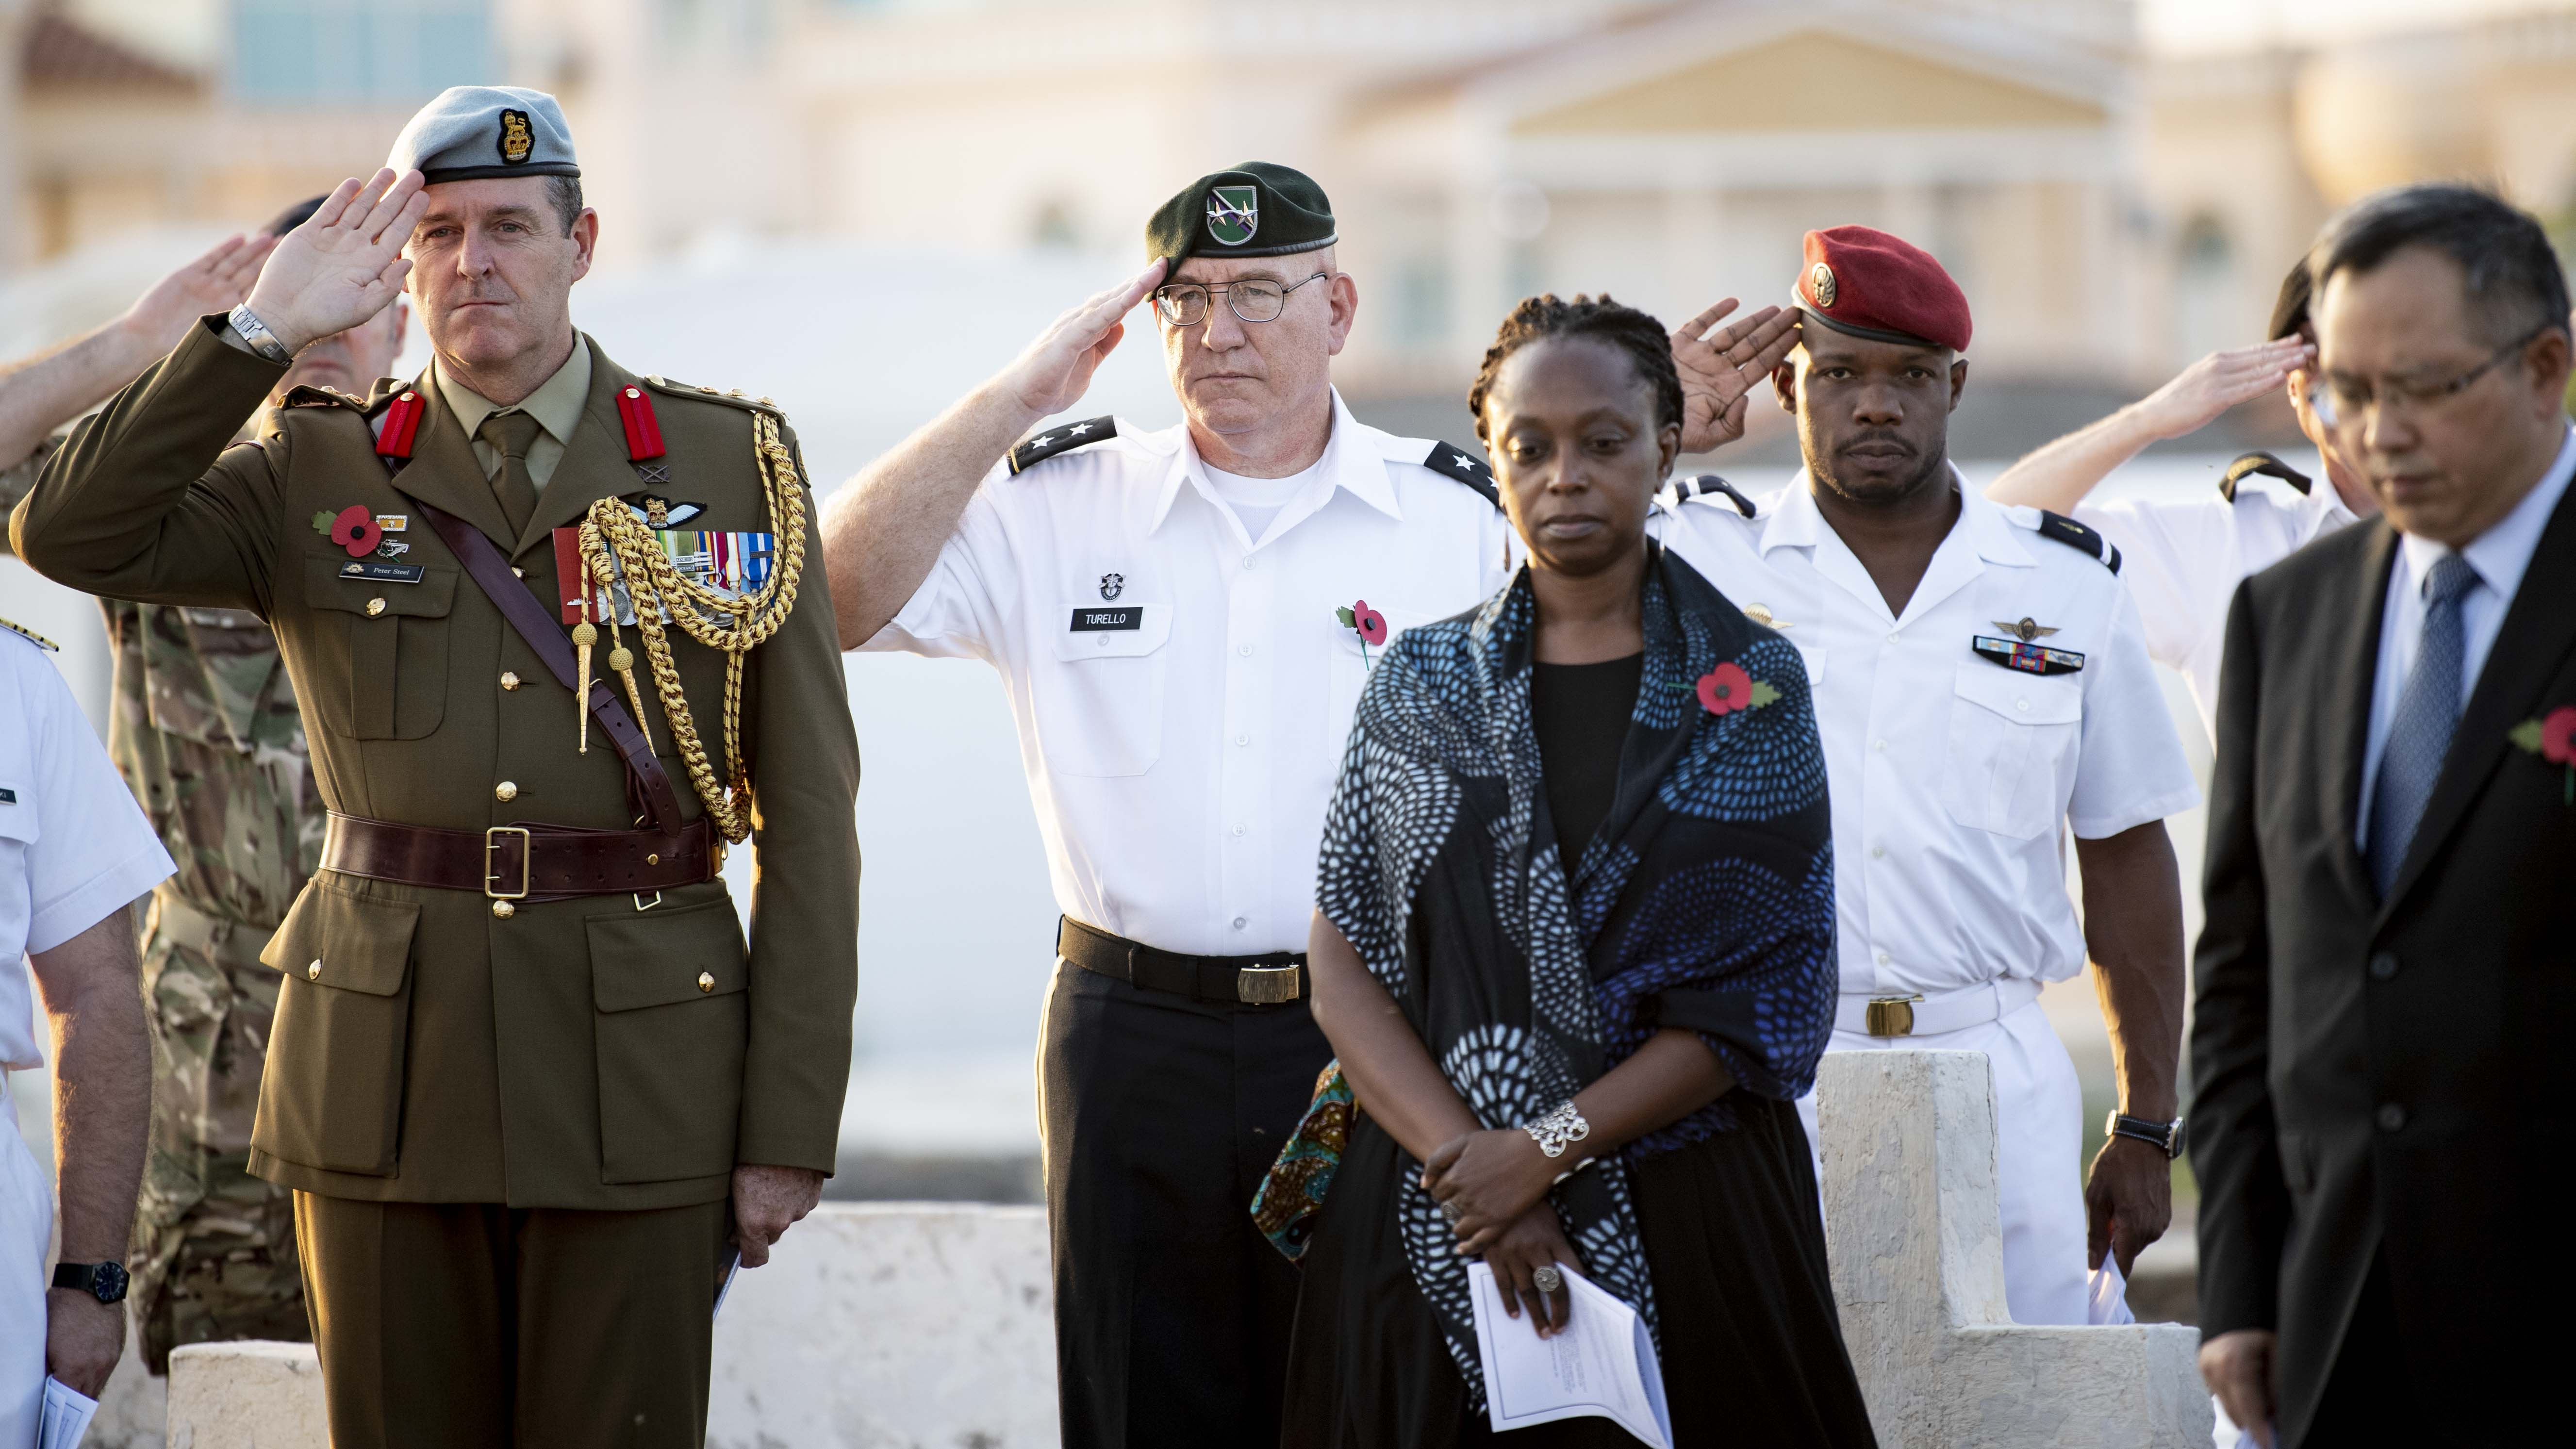 U.S. Army Maj. Gen. Michael Turello, commanding general, Combined Joint Task Force-Horn of Africa, center, salutes during a Remembrance Day service in Djibouti City, Djibouti, Nov. 13, 2019. Traditionally observed on November 11, Remembrance Day commemorates the day hostilities stopped on the western front during World War I. (U.S. Air Force photo by Staff Sgt. J.D. Strong II)